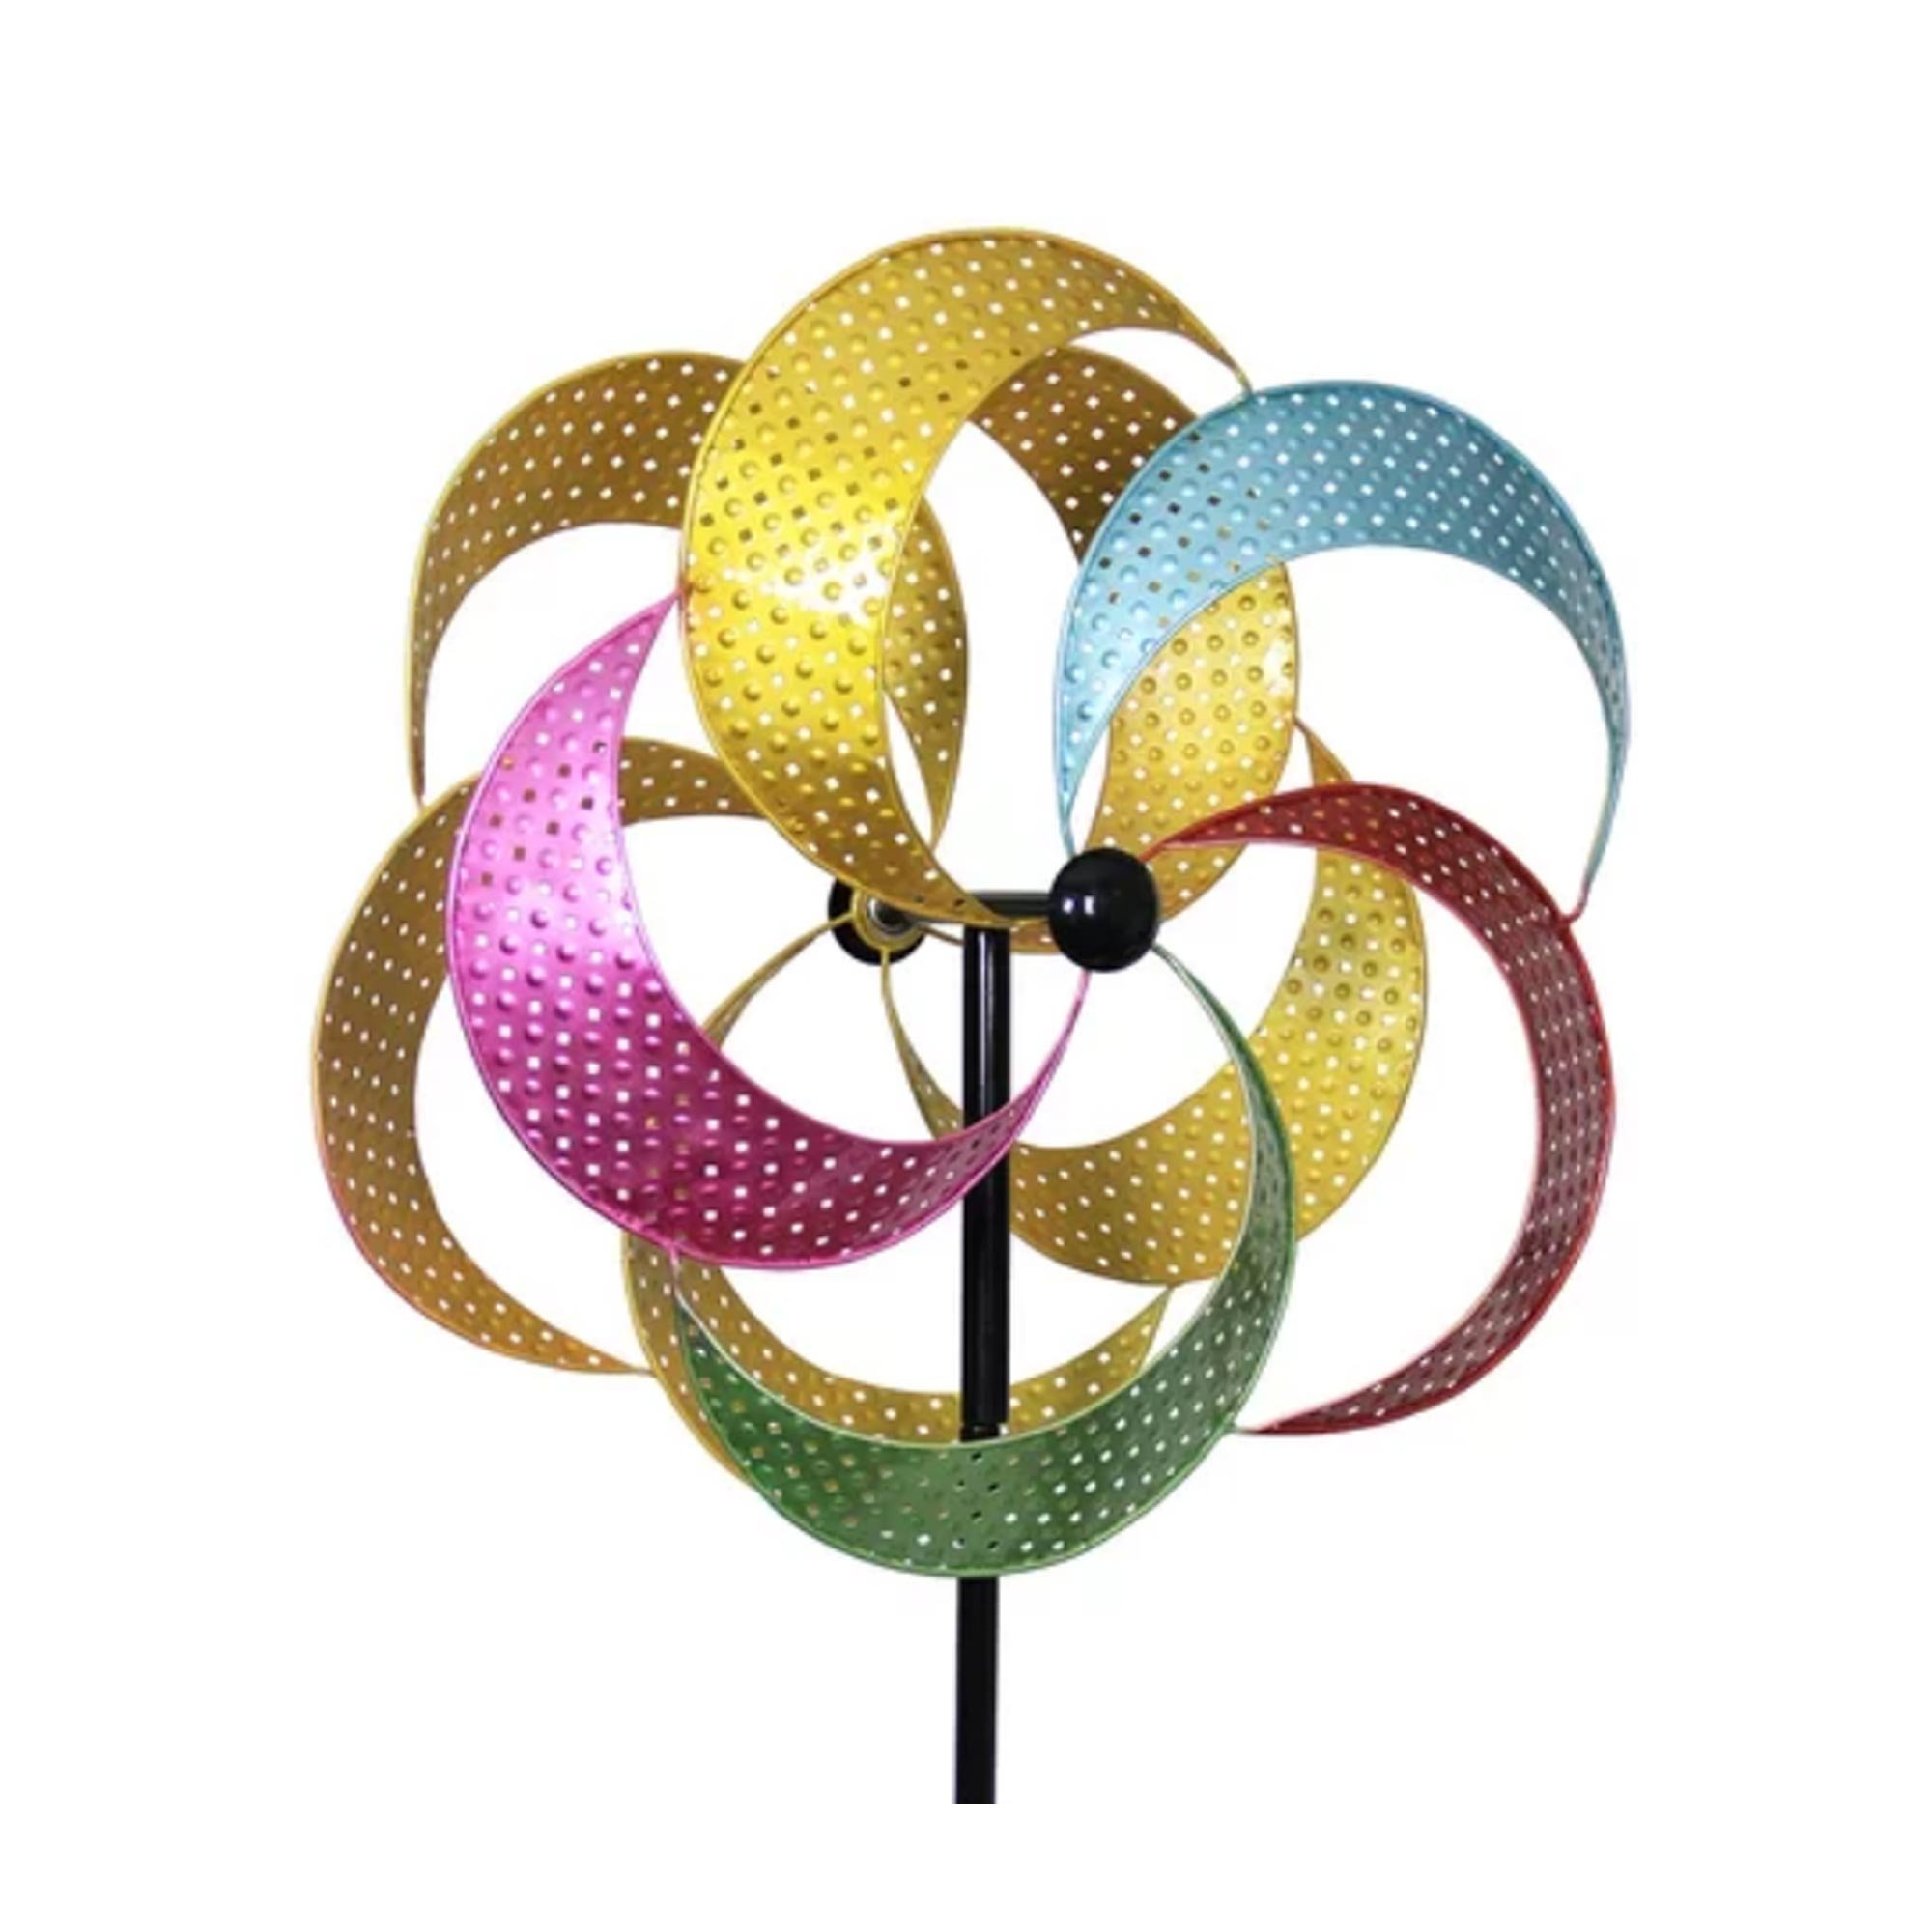 Home & Garden MULTI-COLORED KINETIC PINWHEEL Metal Yard Decor Spinning 12460